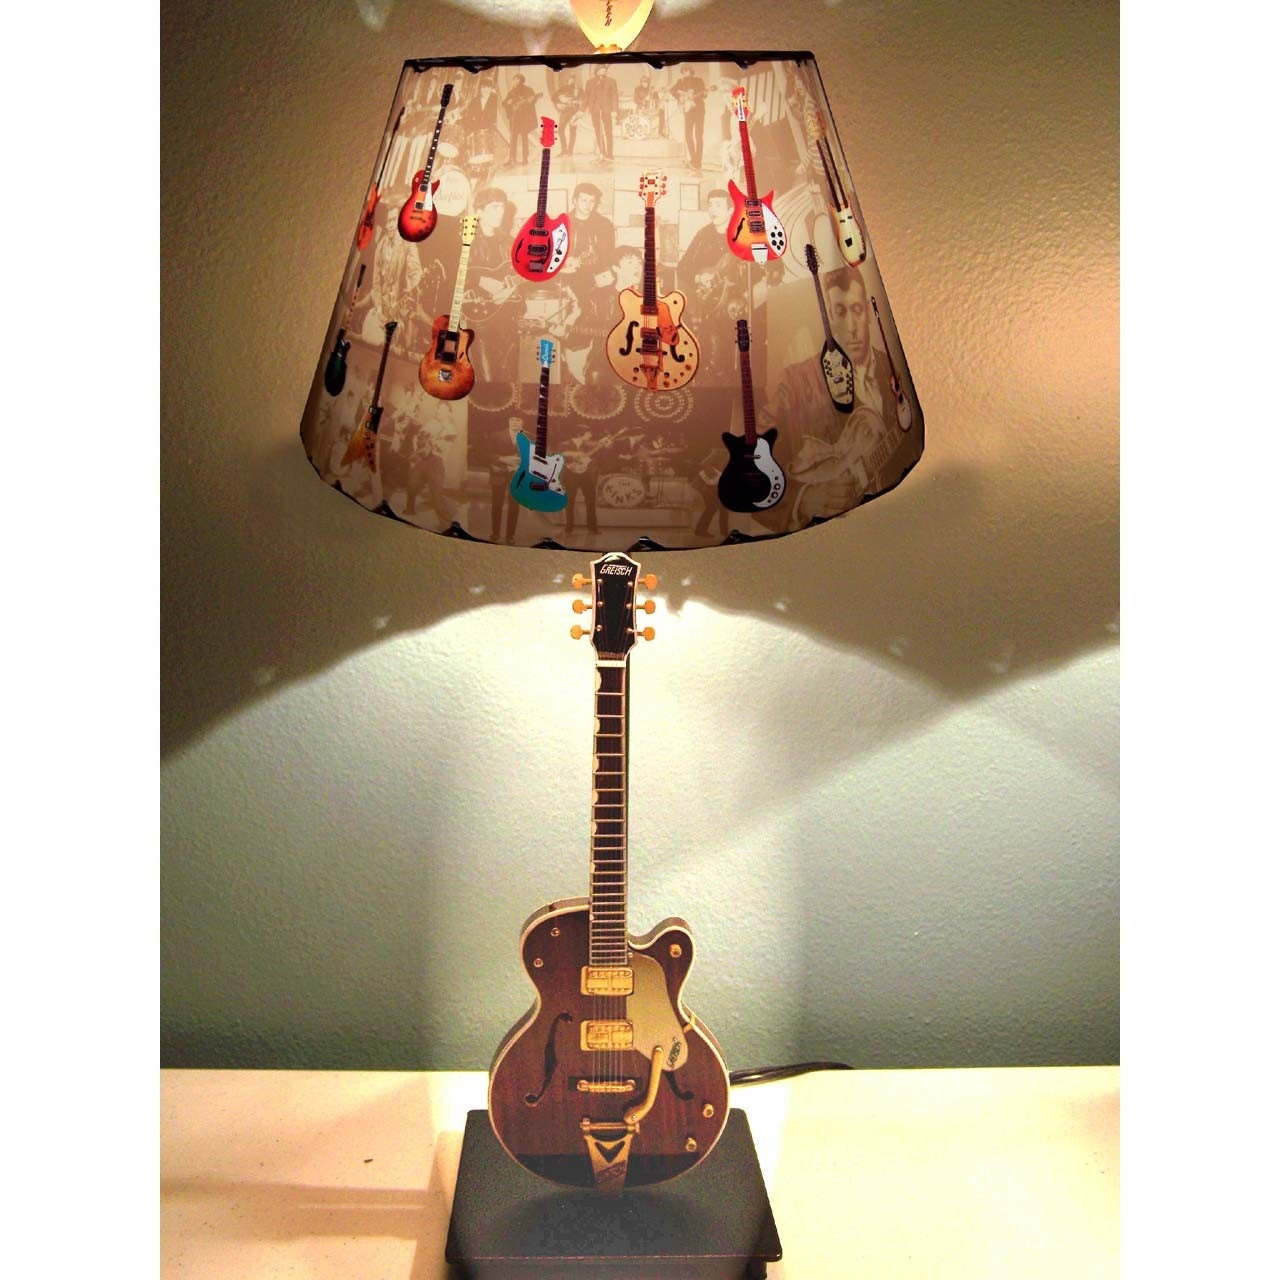 Etsy :: CreativePal :: Gretsch Country Gentleman George Harrison Guitar Lamp and Vintage Guitars Lamp Shade from etsy.com